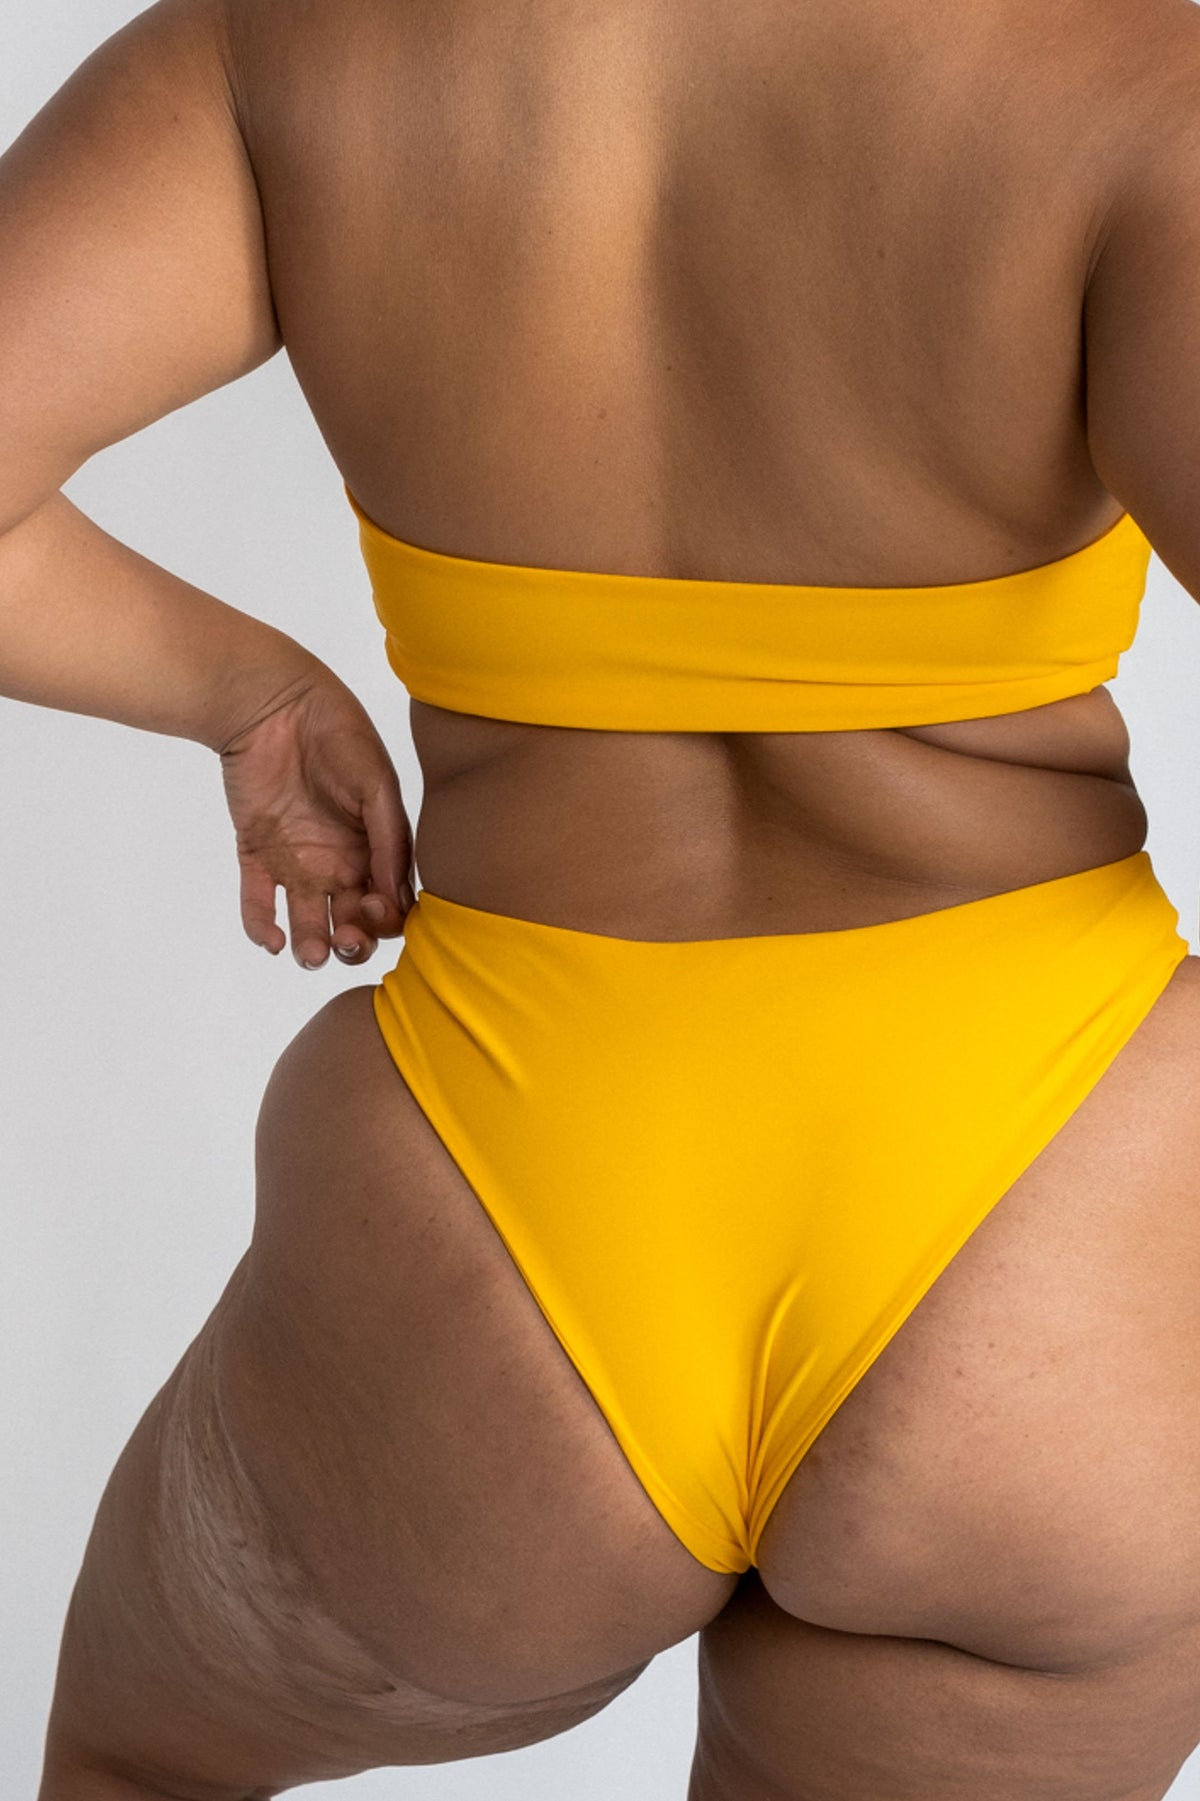 A close up of the back of a woman standing with her hands on her hips wearing yellow high cut bikini bottoms with a matching yellow strapless bandeau bikini top.